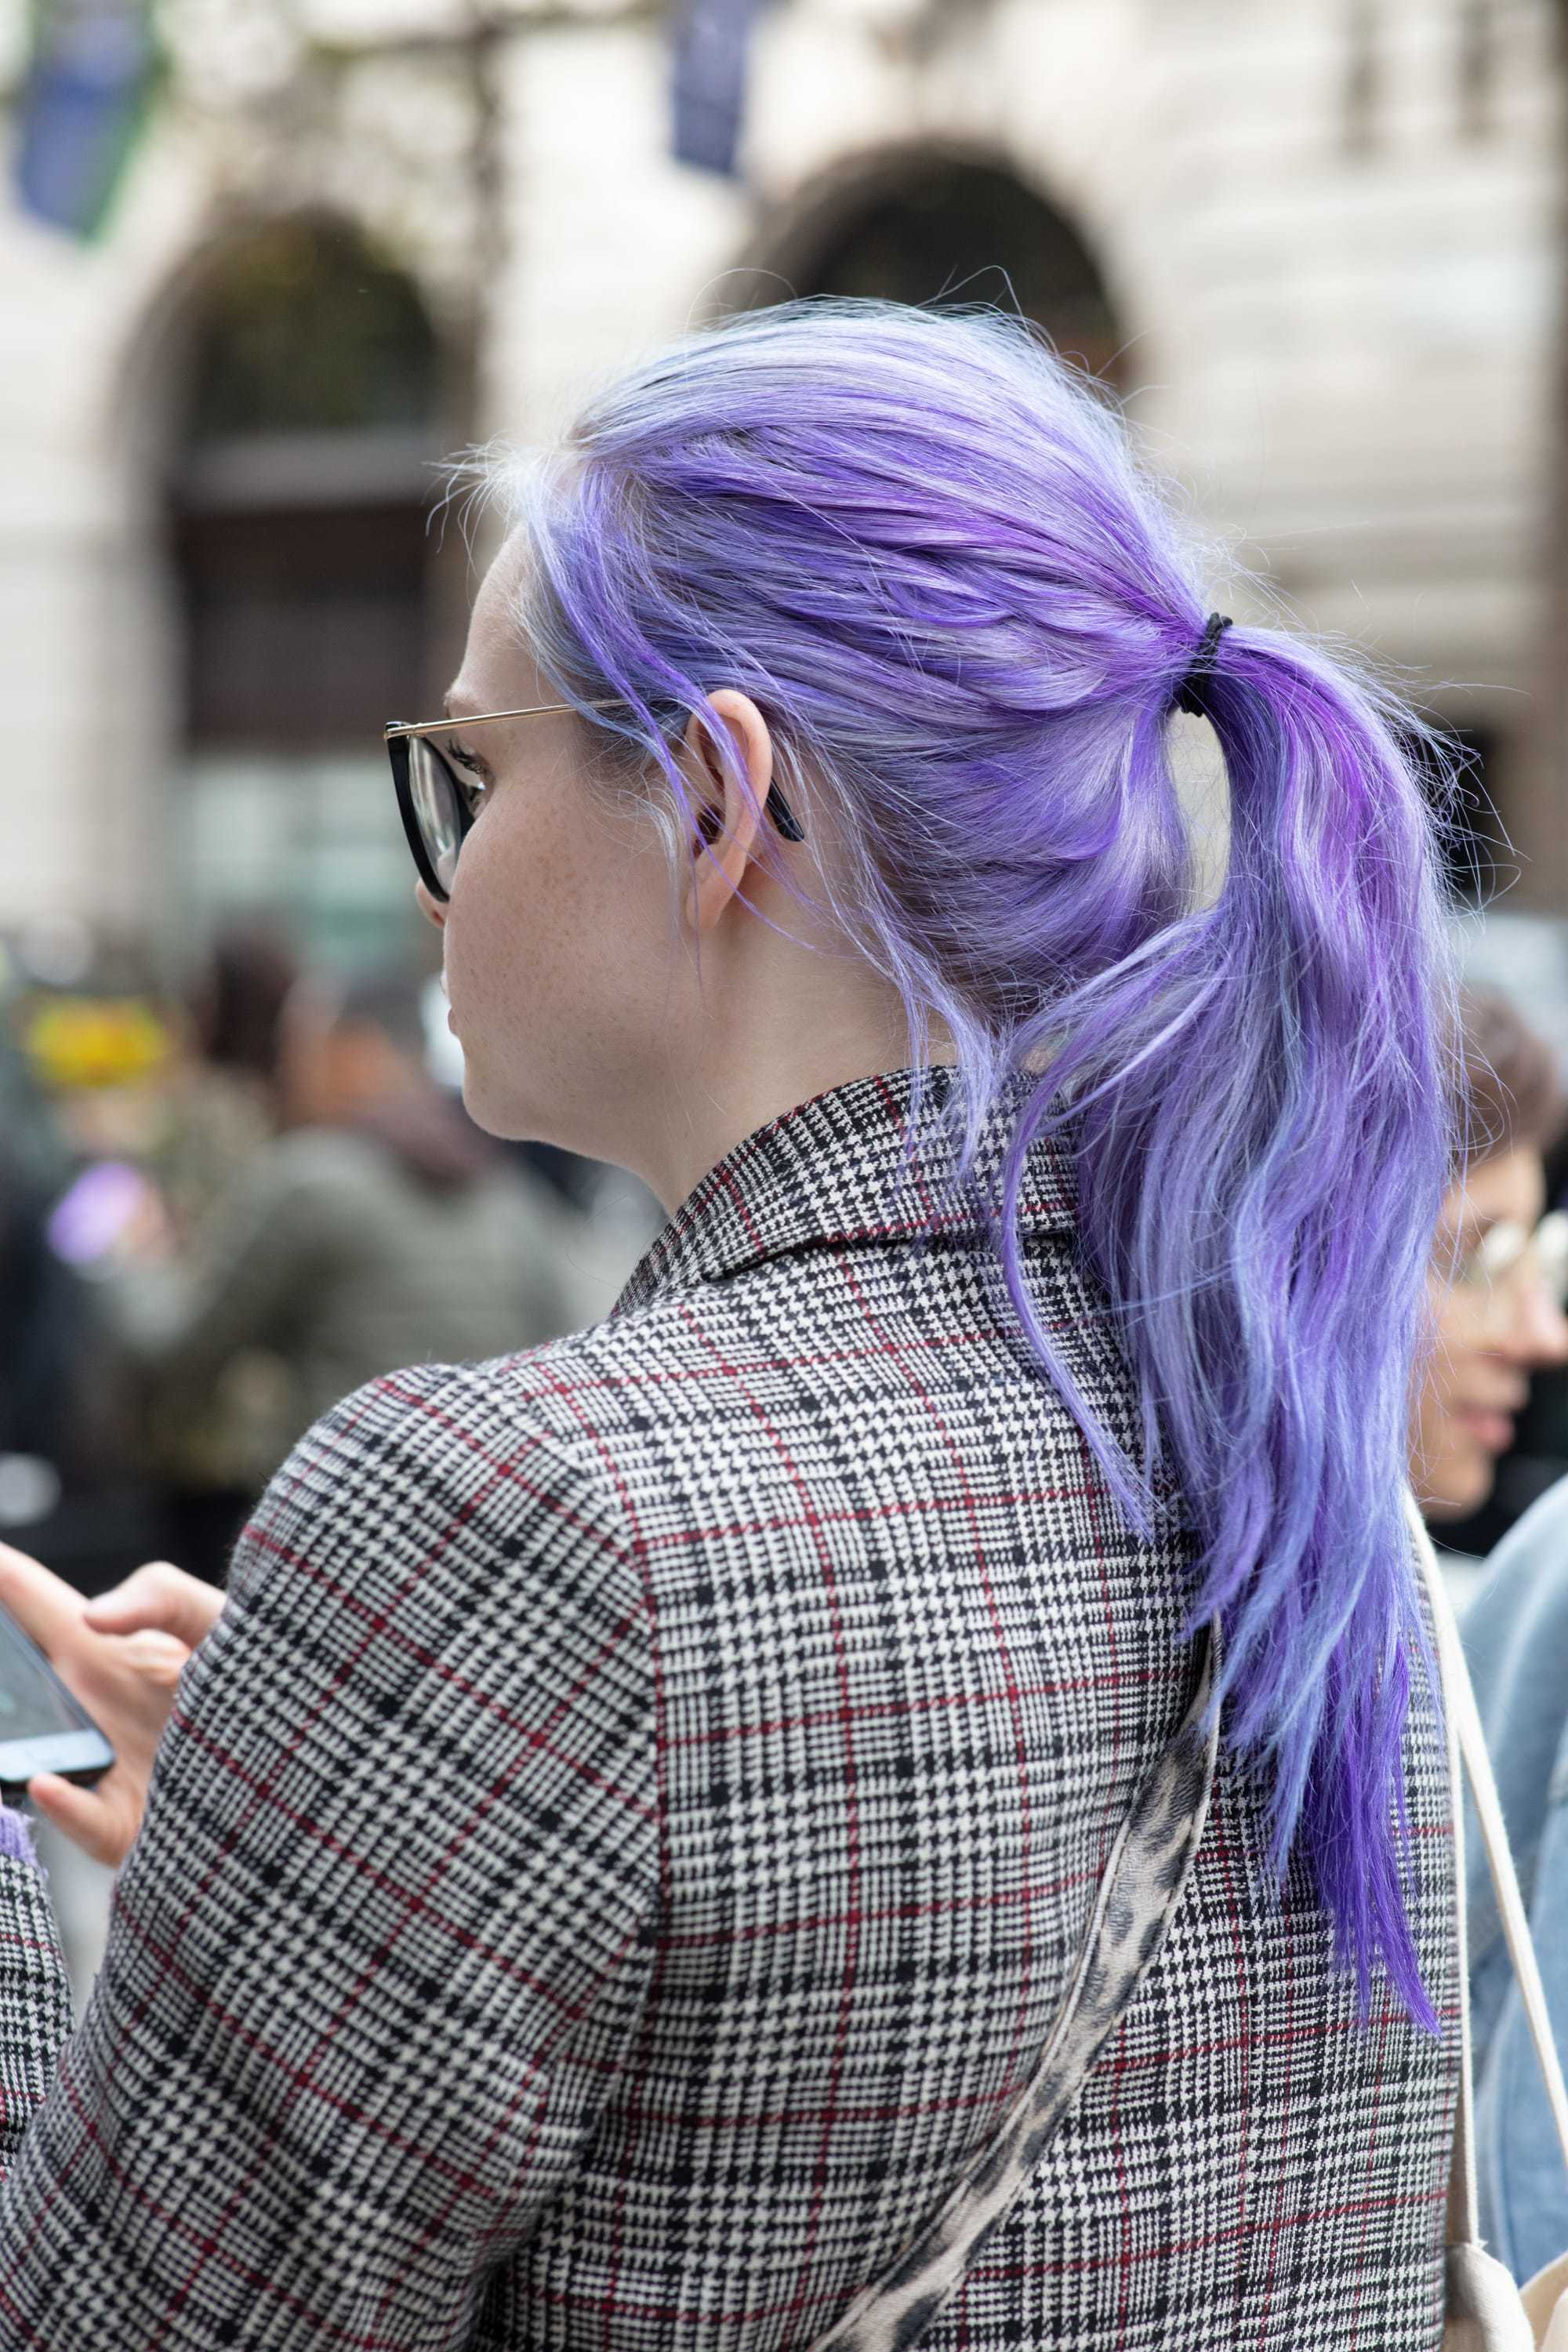 Washing hair after colouring: Rear view of women with long purple hair styled into a ponytail, wearing blazer and posing for an All Things Hair street style shot